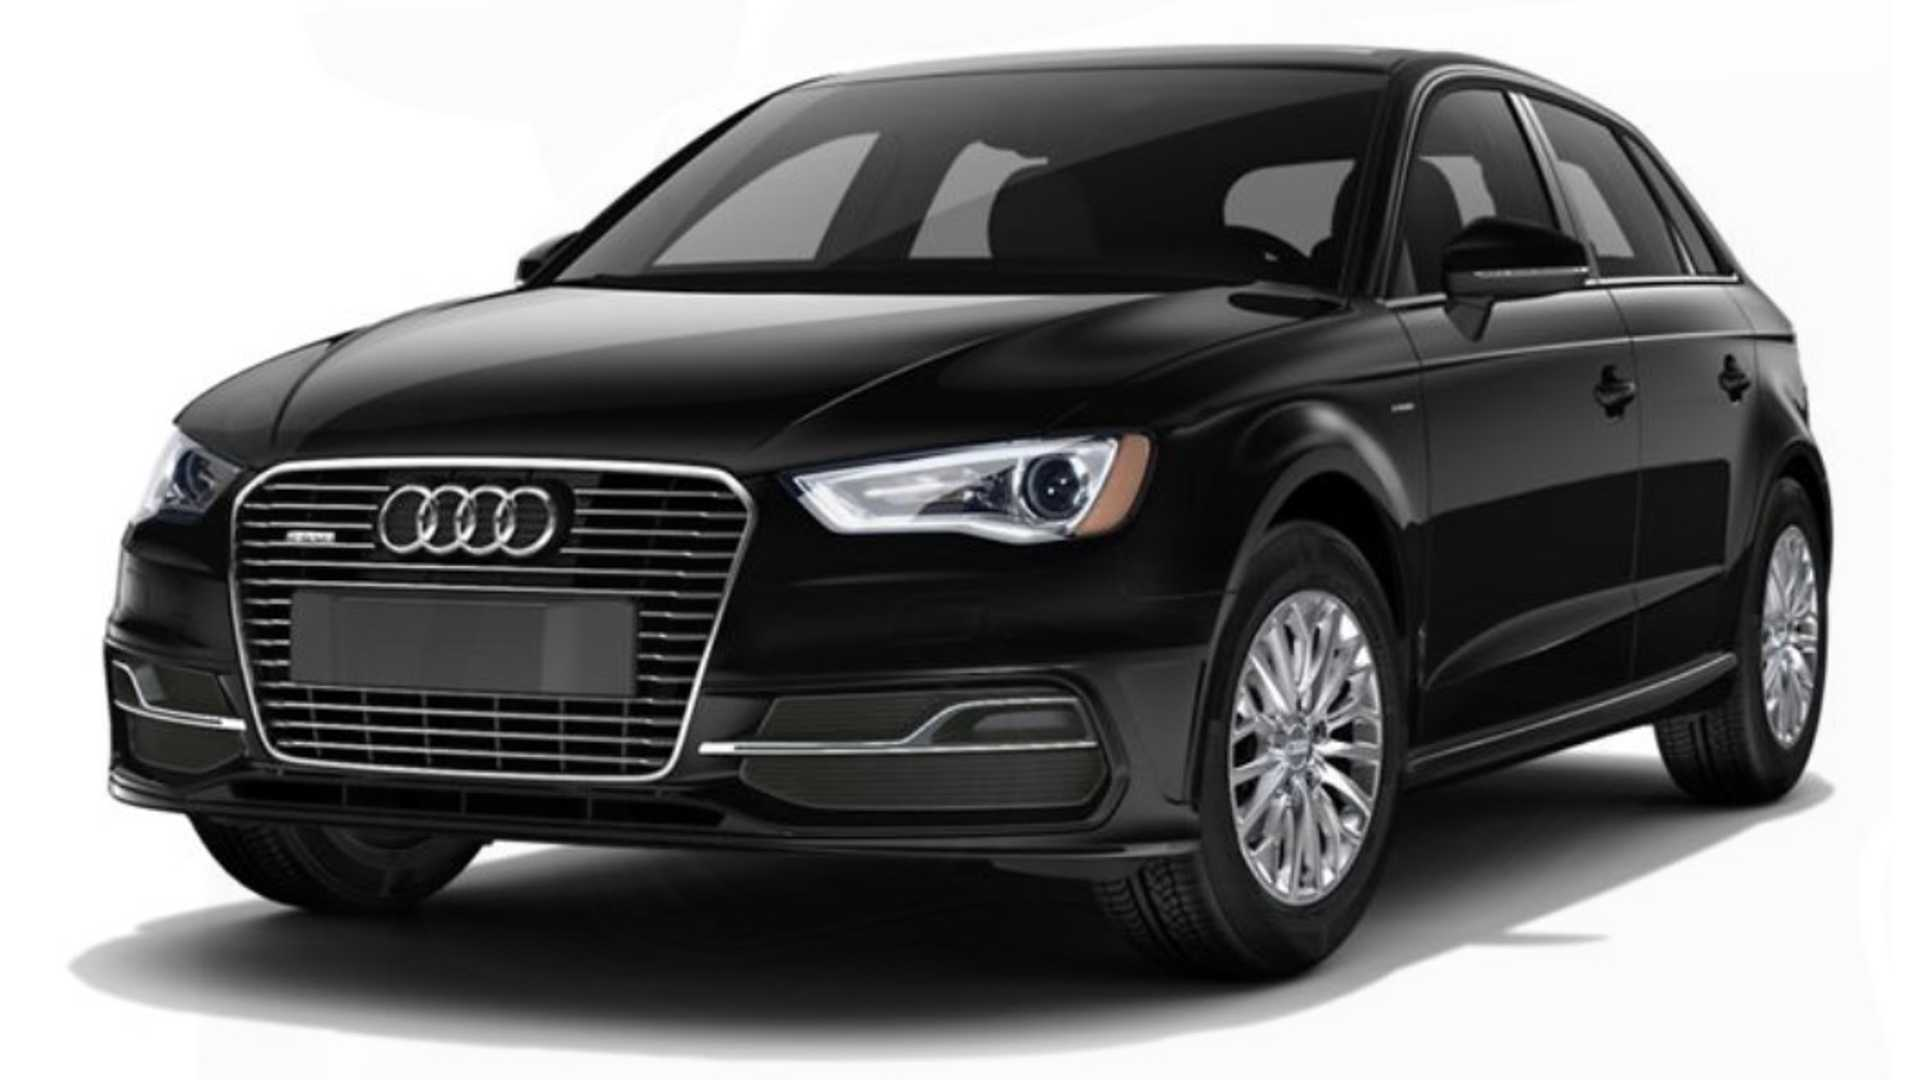 Audi A3 E Tron Gets Up To 17 Miles Of Electric Range According Epa Ultra Version Emerges